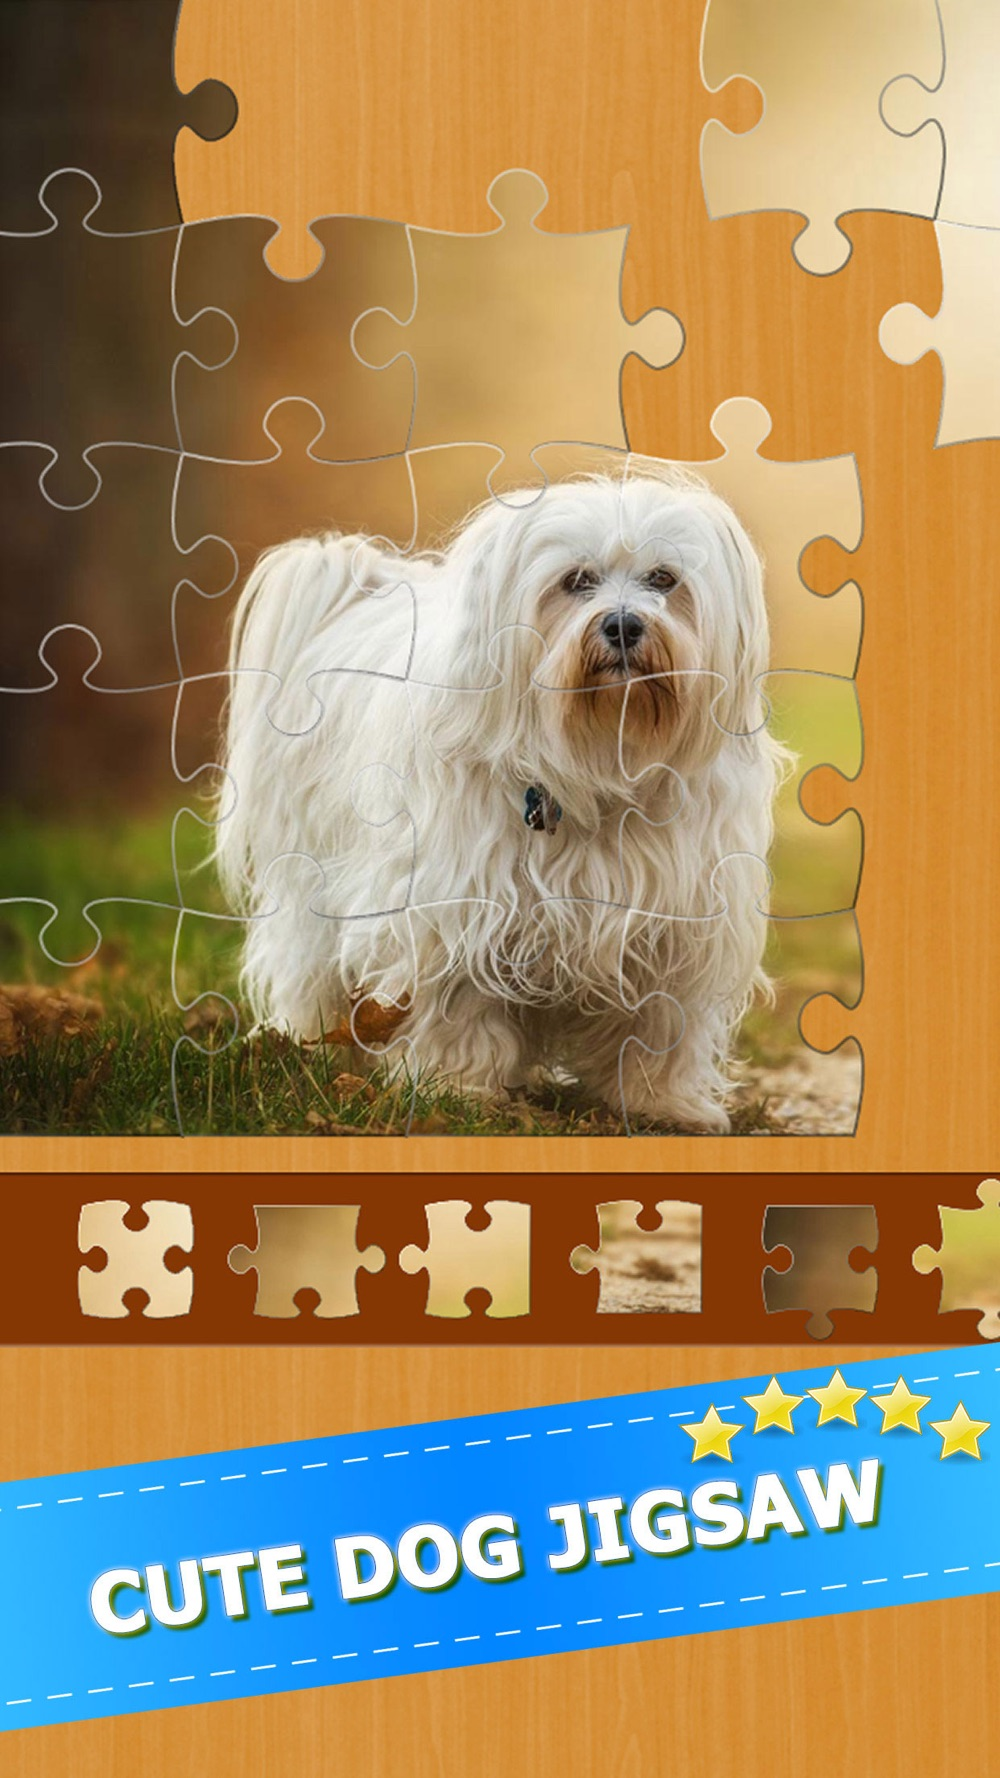 Cute Puppy Dogs Jigsaw Puzzles Games For Adults cheat codes